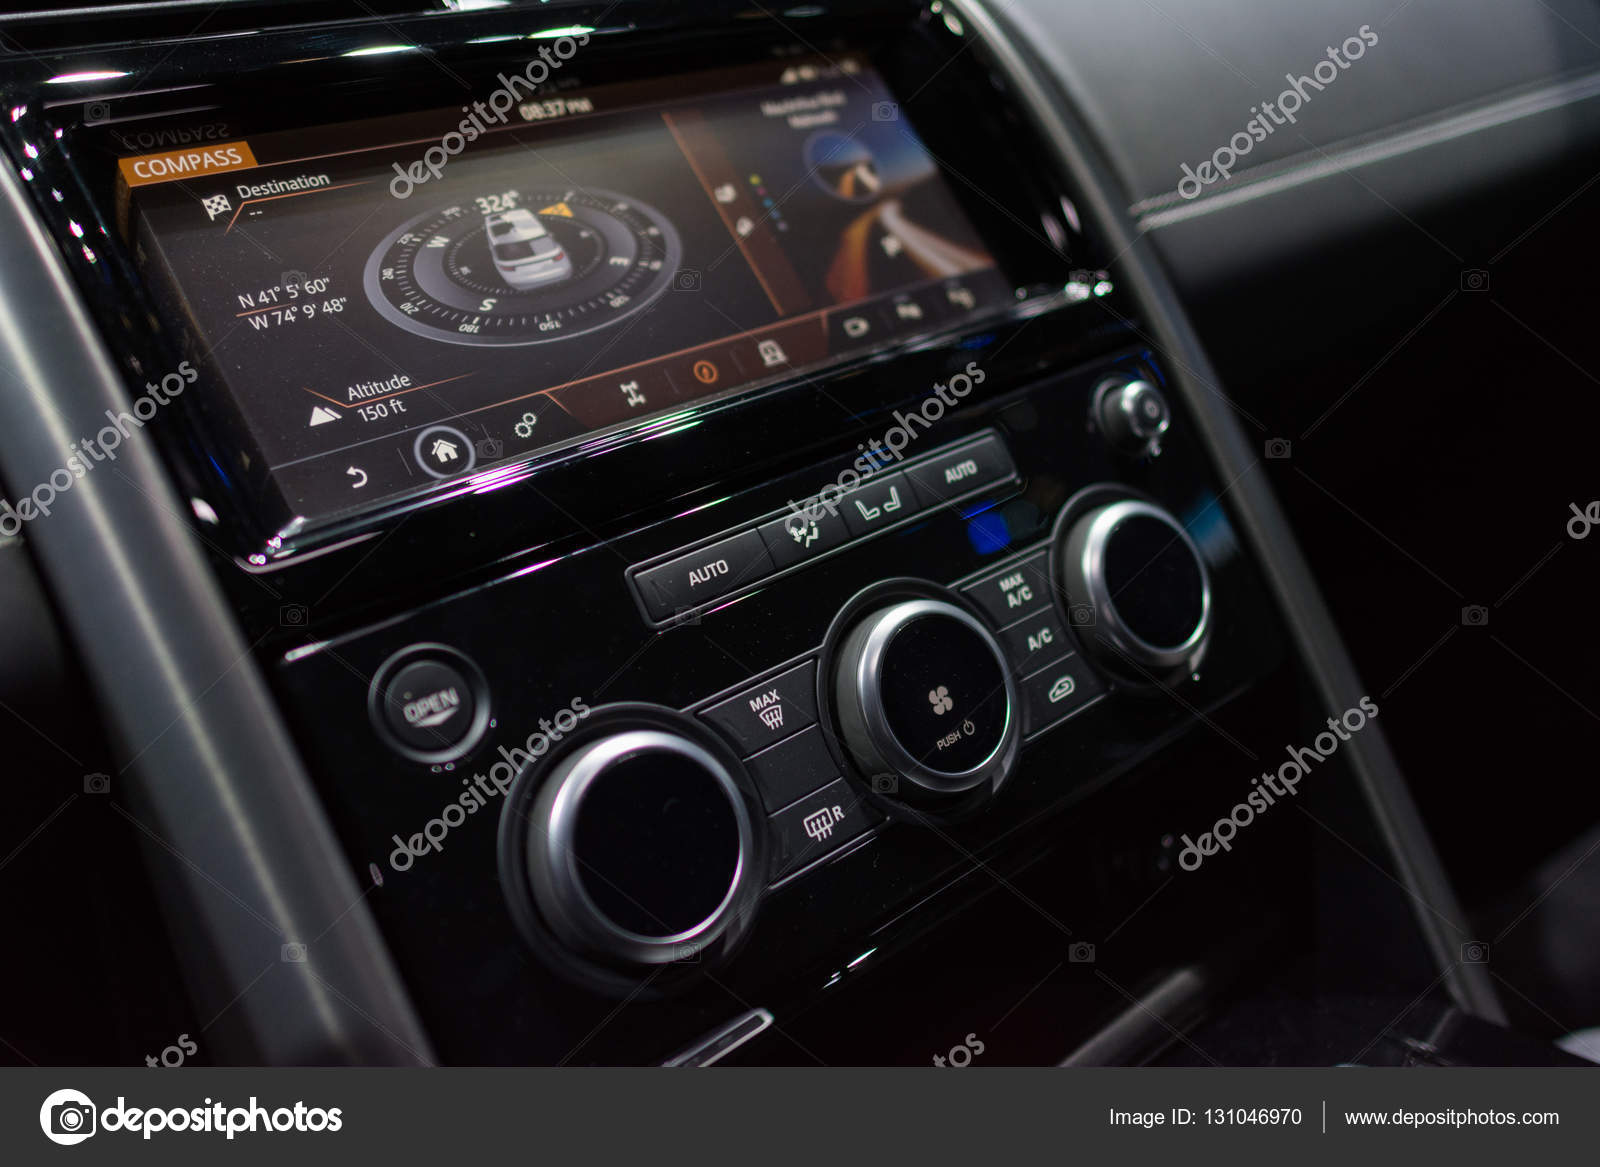 Land Rover Discovery Interior U2014 Stock Photo